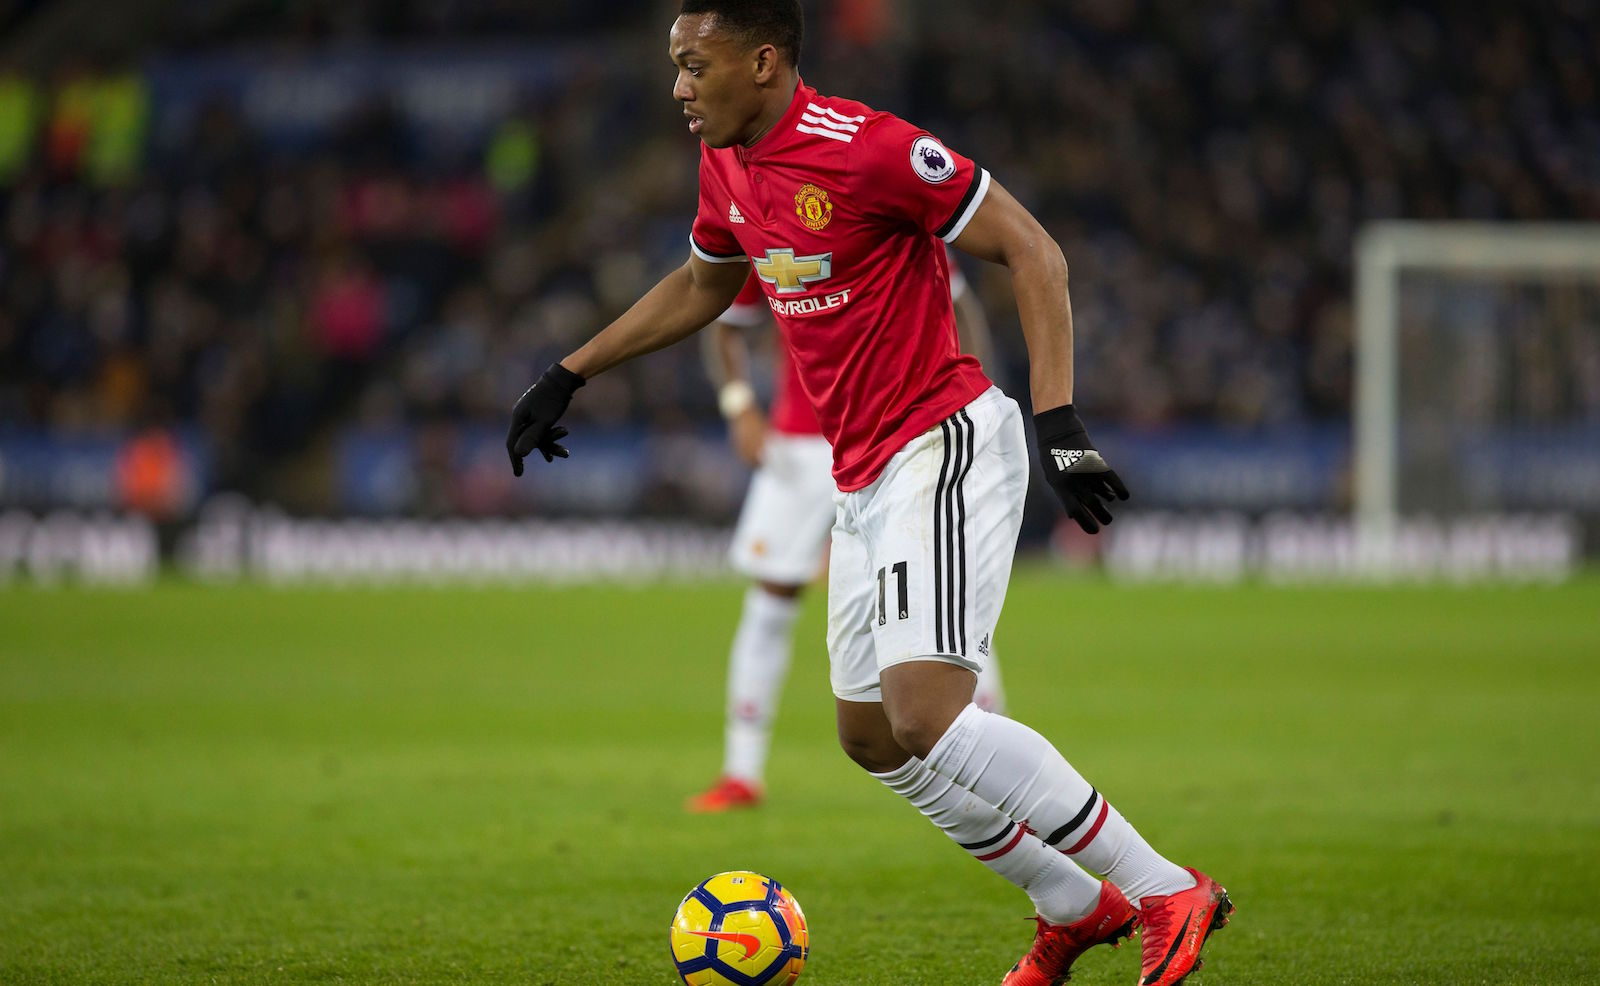 From Italy: Juventus plotting January move for Anthony Martial